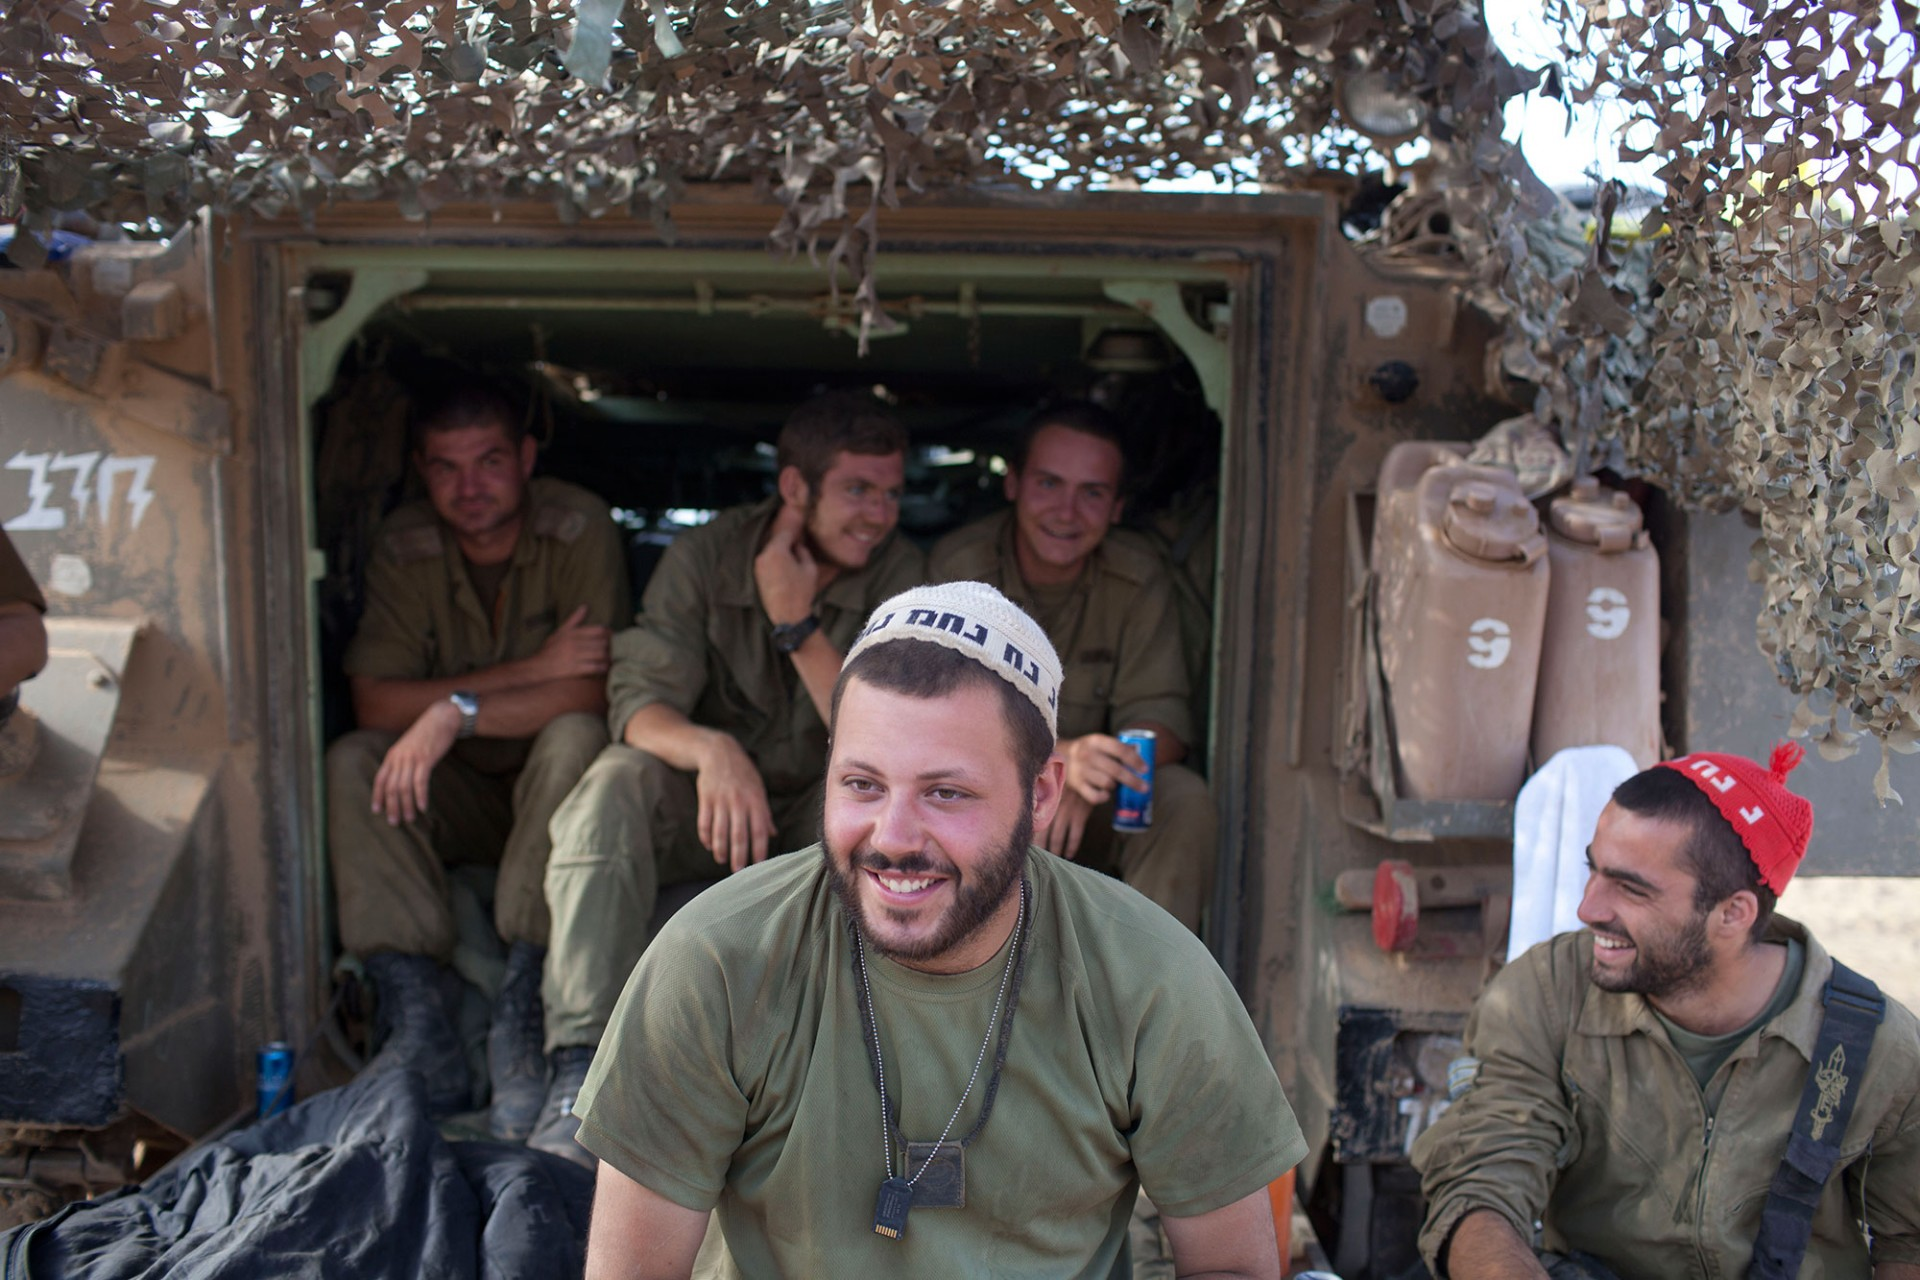 Israeli soldiers sit next to a Army Armoured Personnel Carrier (APC) in a deployment area on July 24, 2014 on Israel's border with the Gaza Strip.